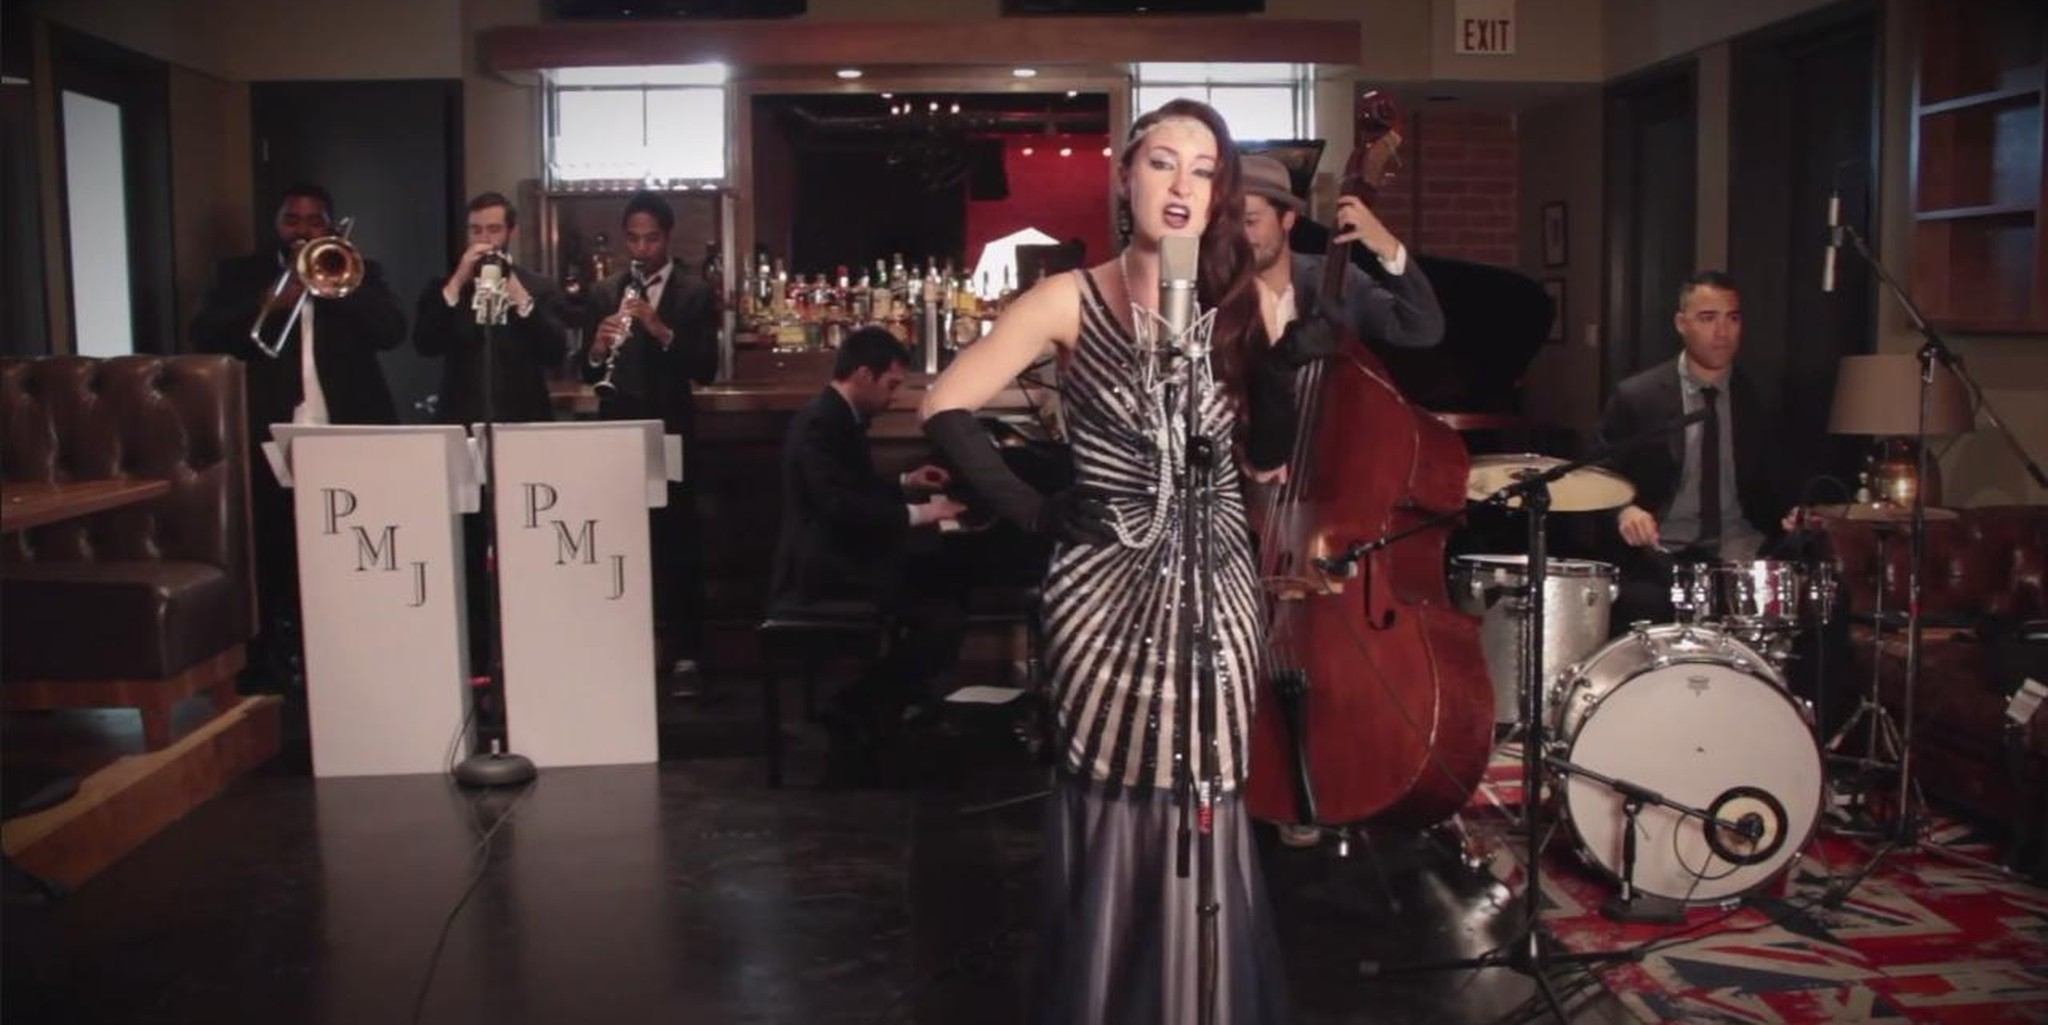 Postmodern Jukebox sings Gangsta's Paradise